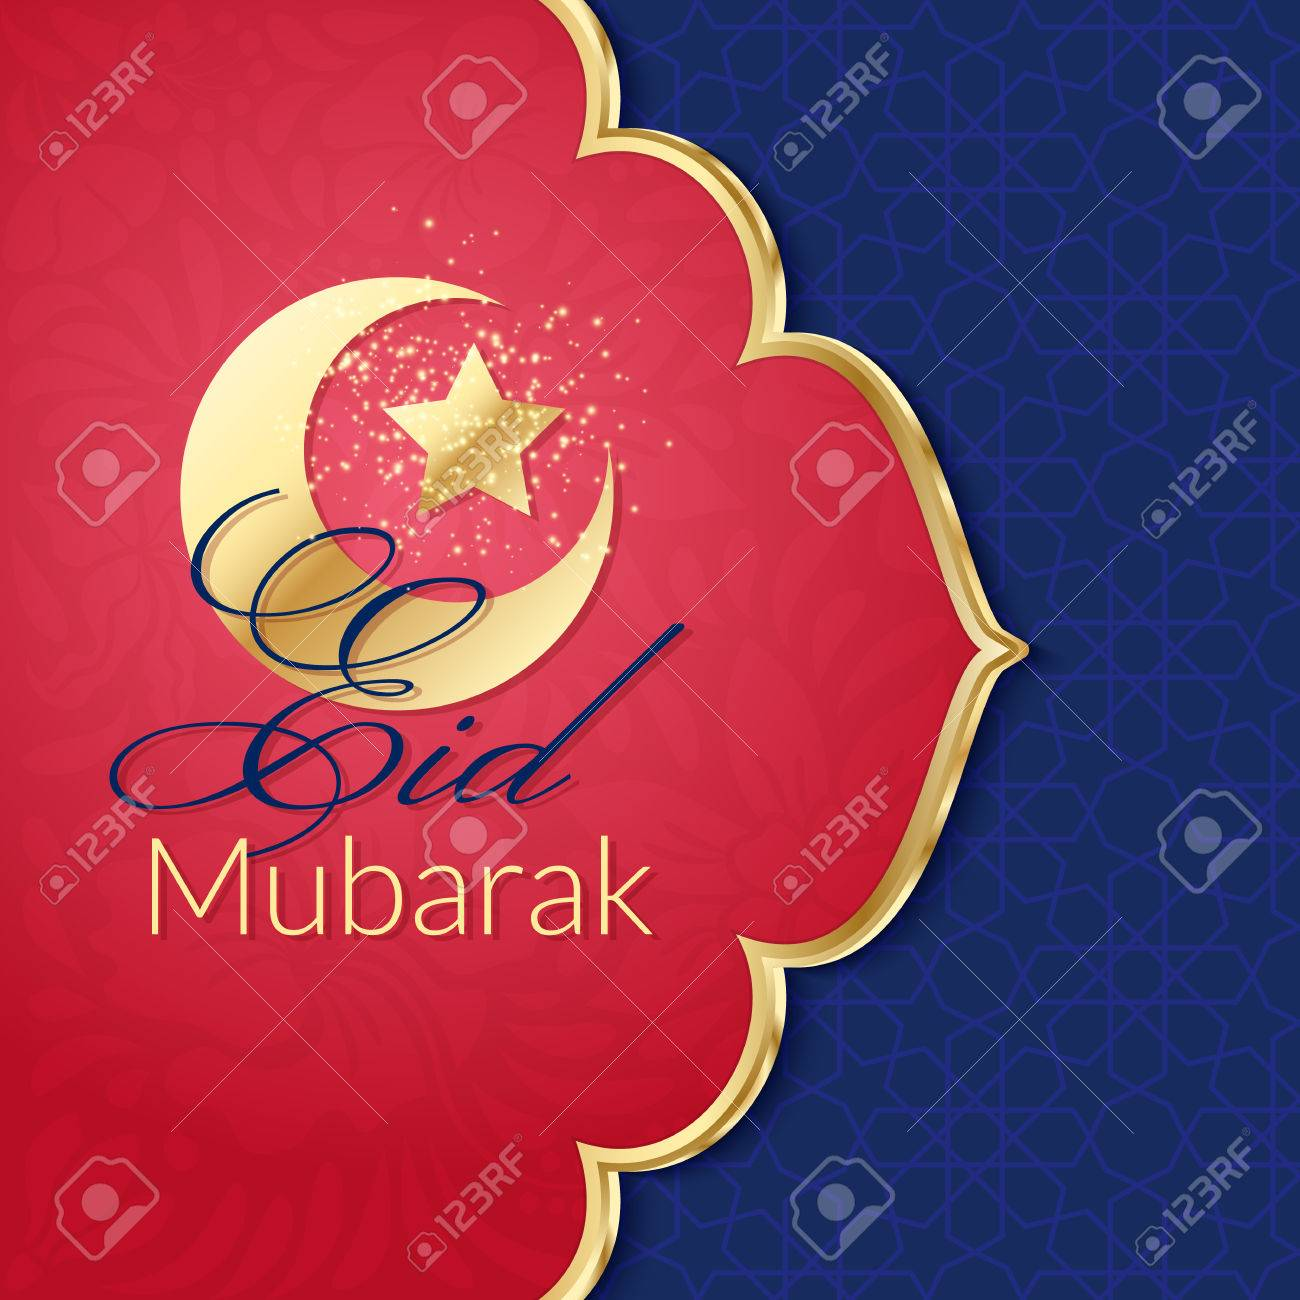 Eid Mubarak Greeting Card With Traditional Pattern And Crescent